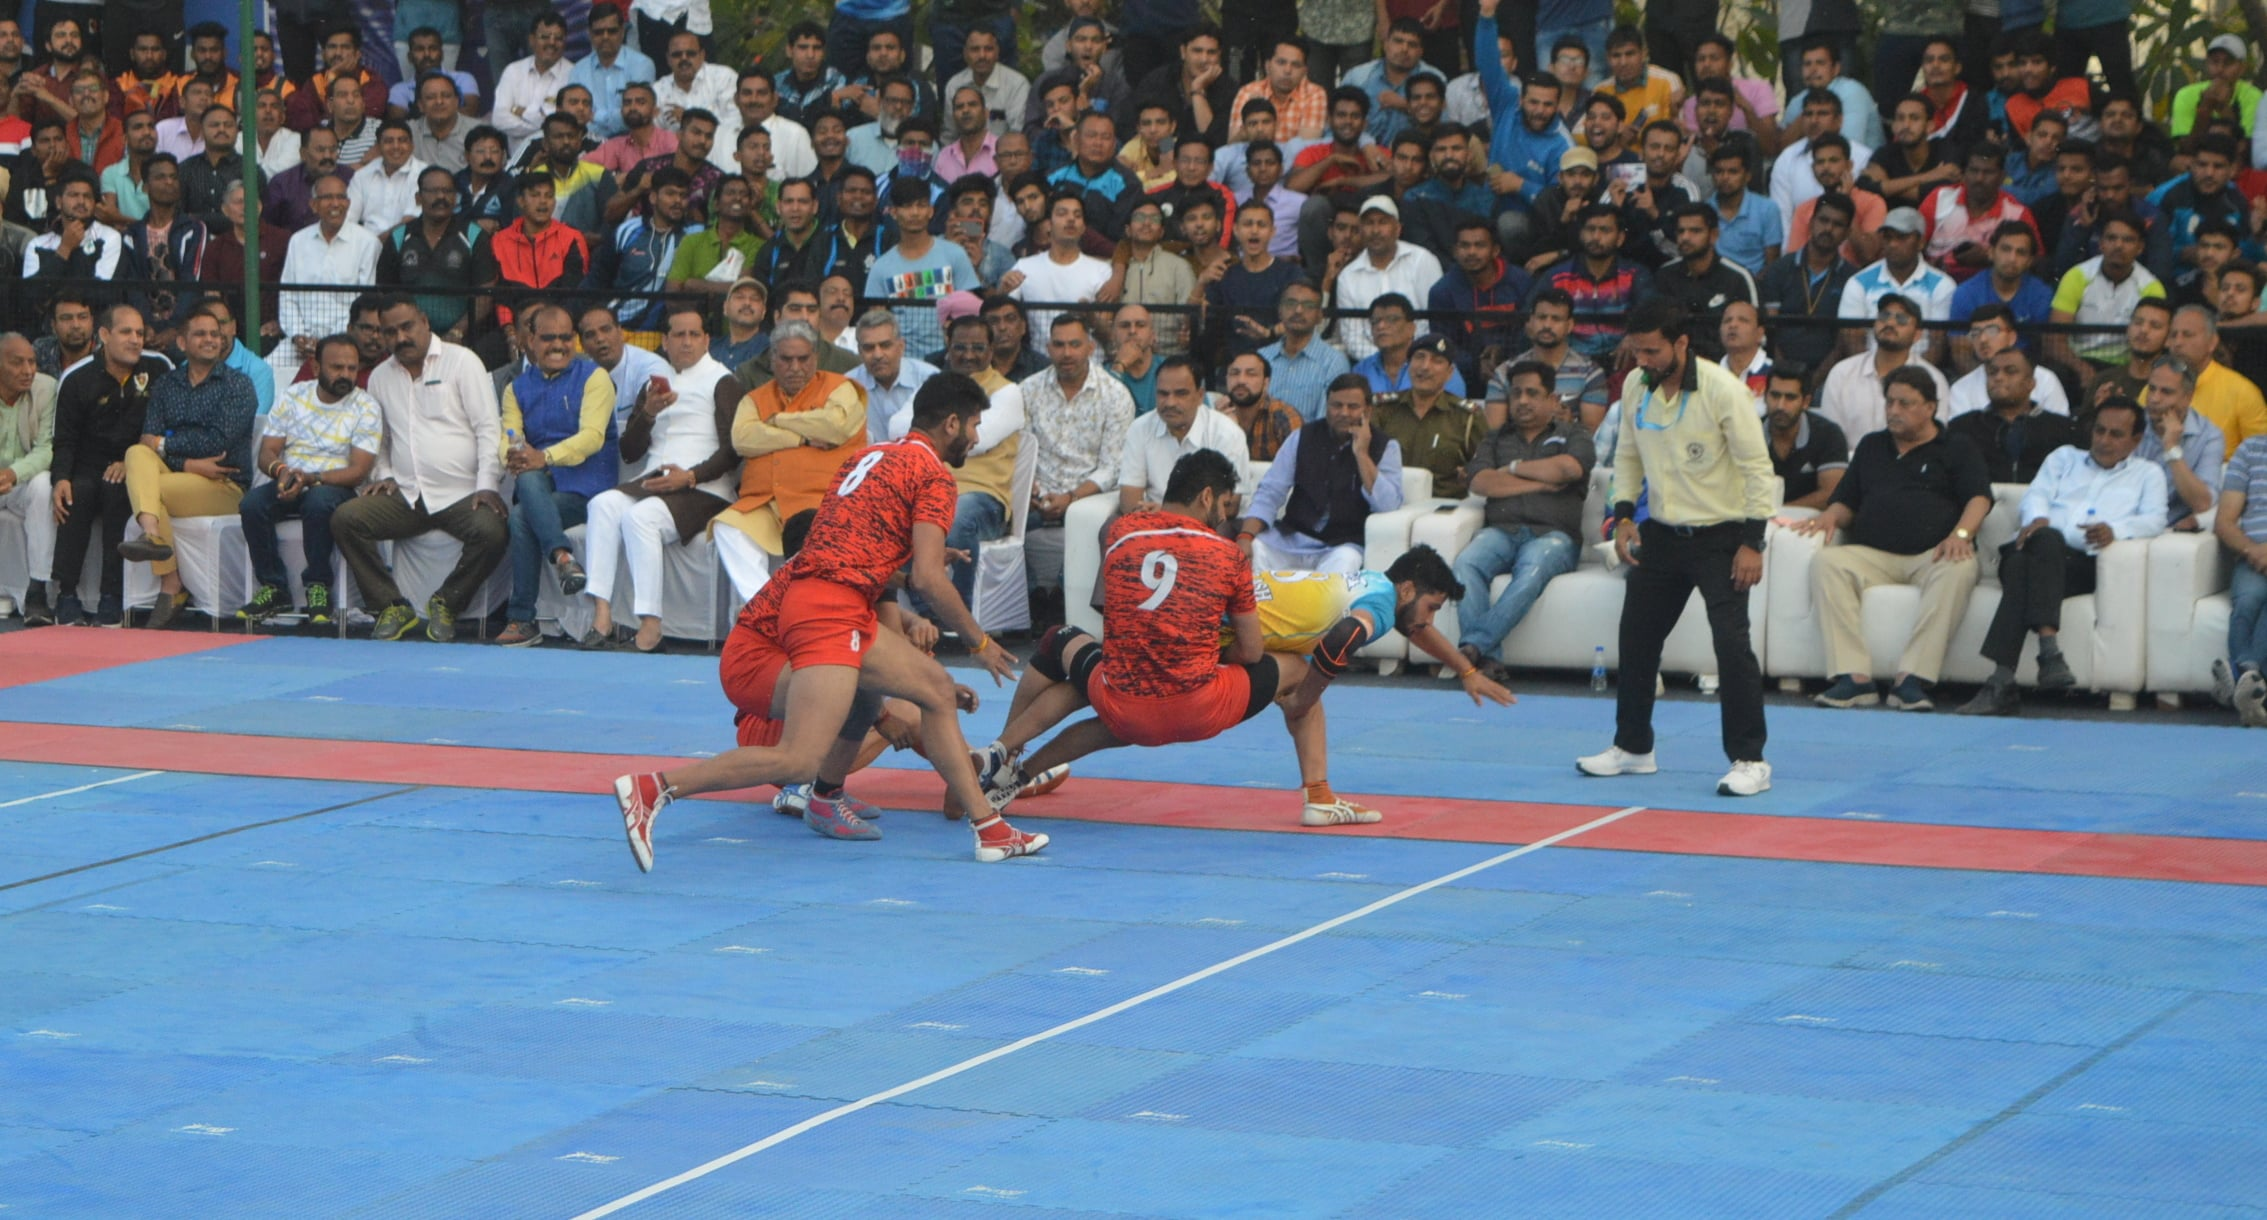 Vikas Khandola during his Super Raid